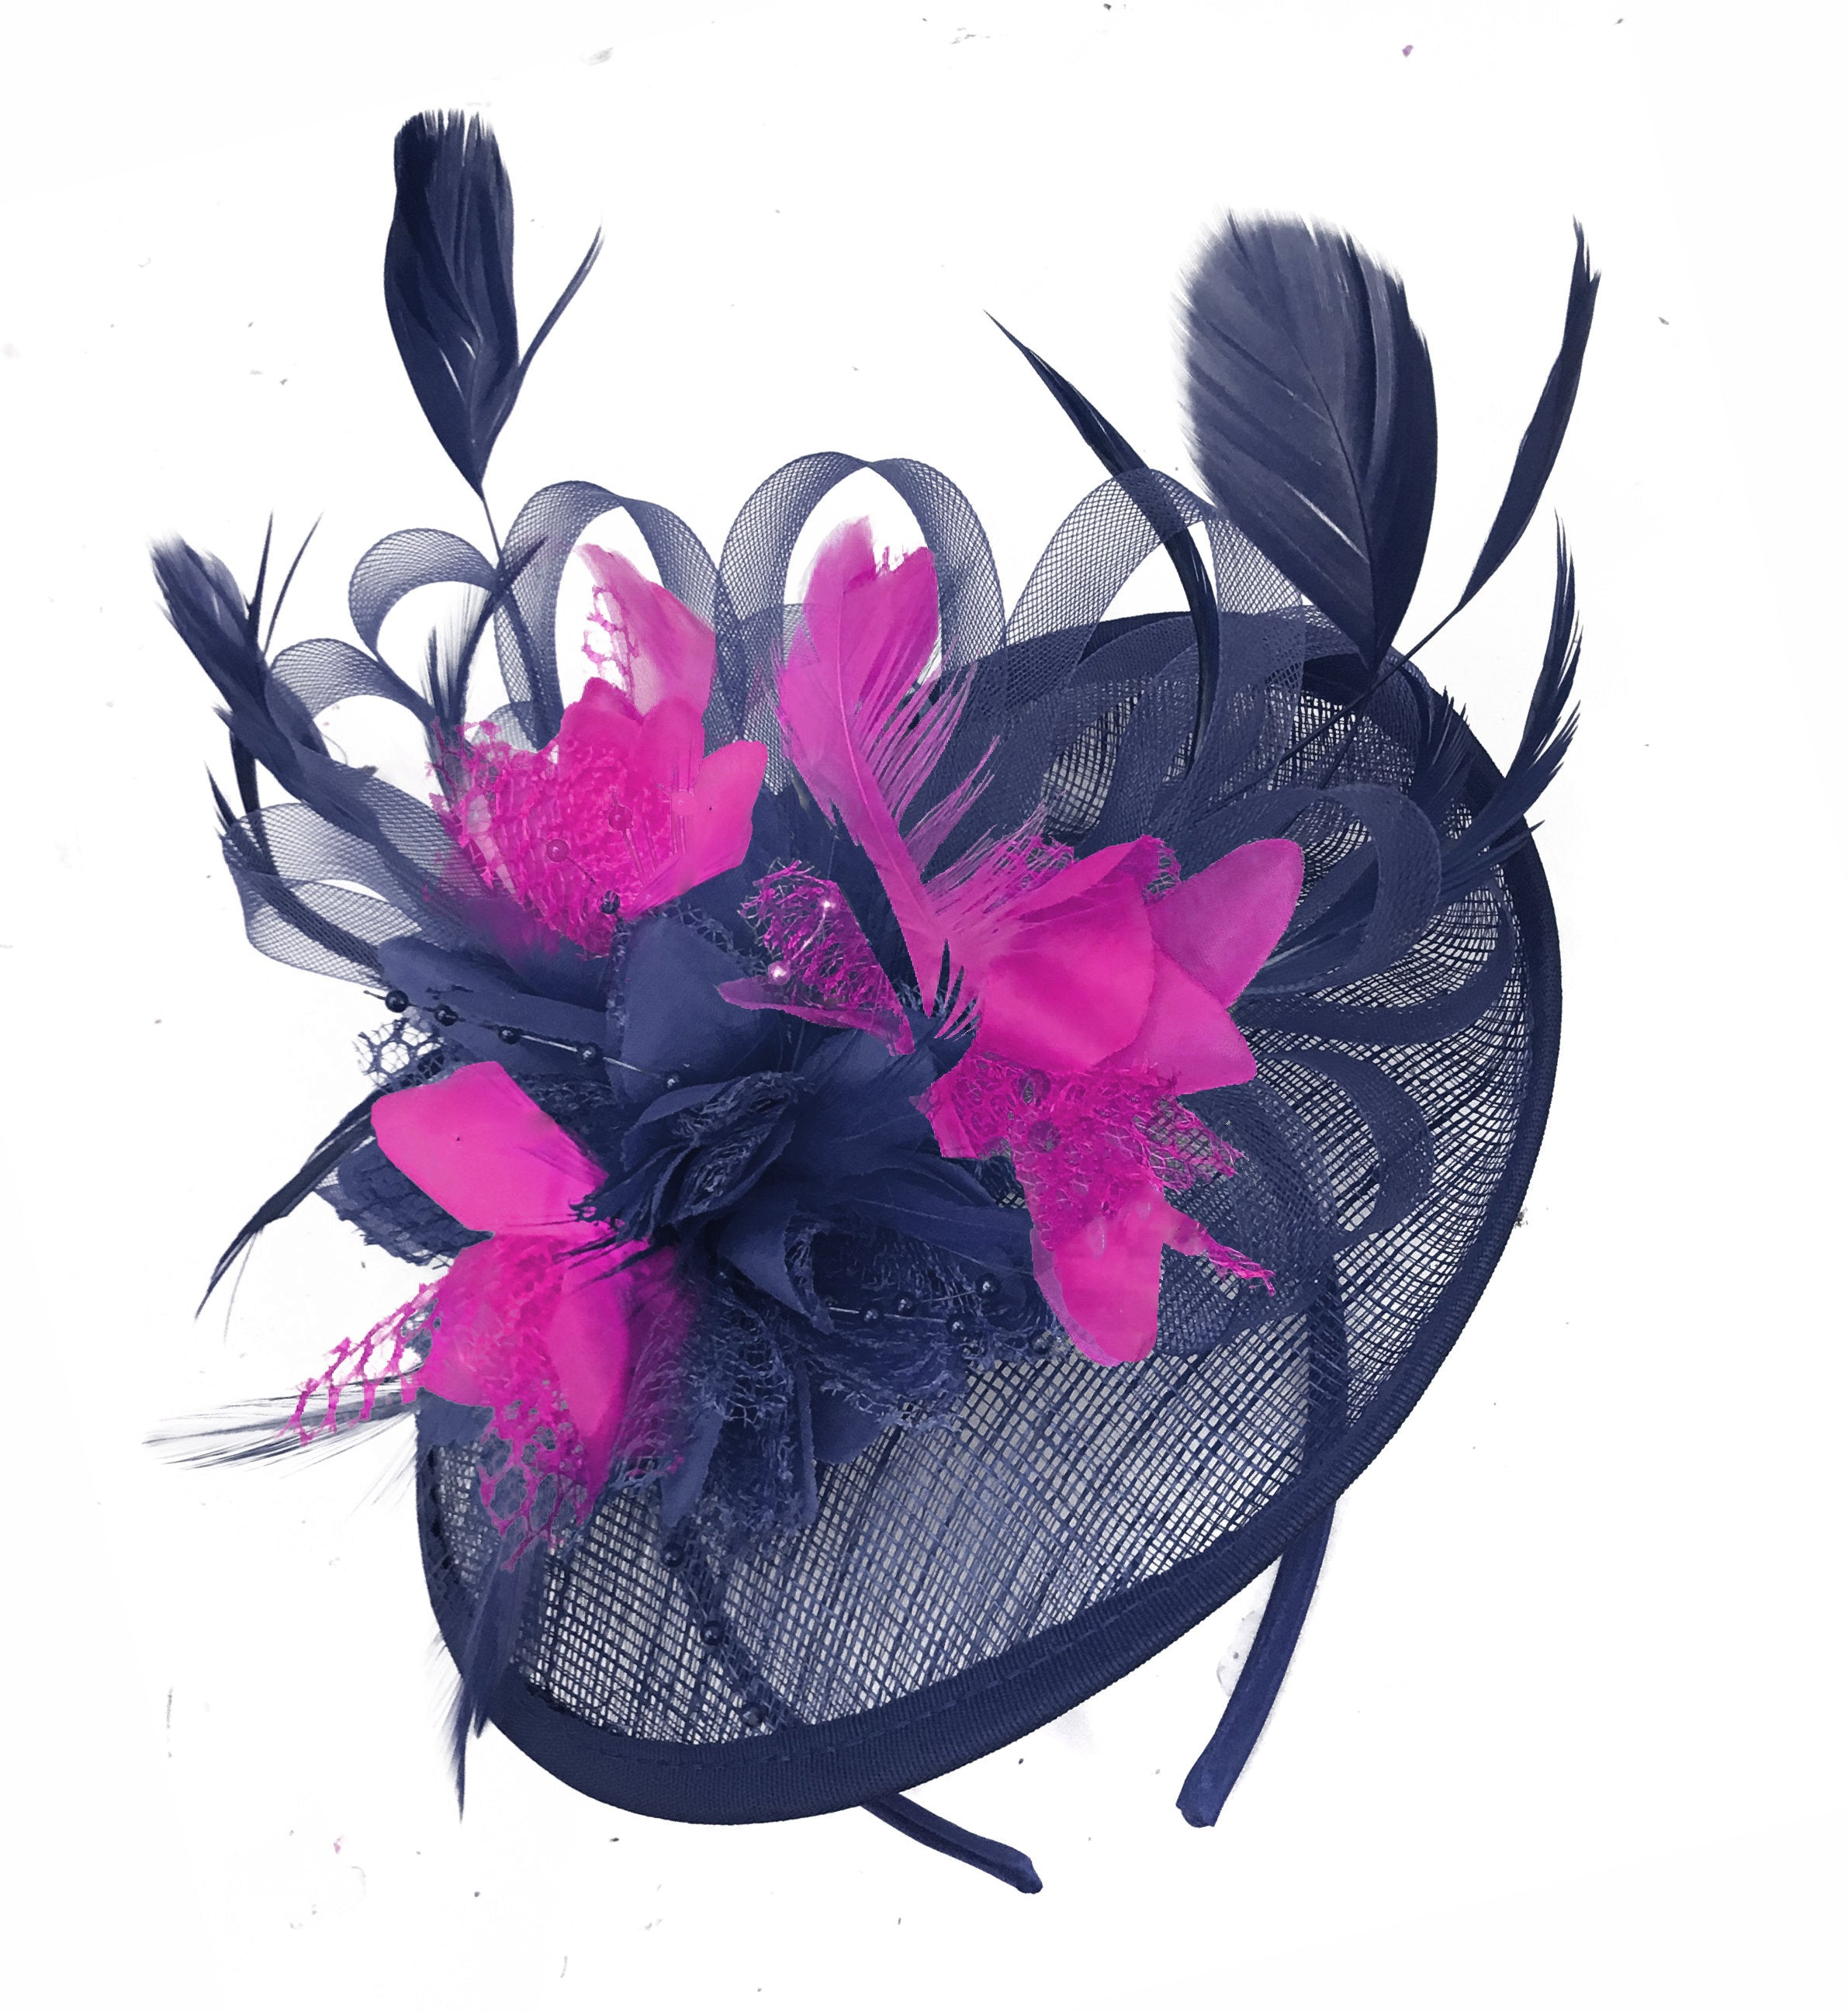 Caprilite Sinamay Navy Blue and Fuchsia Hot Pink Disc Saucer Fascinator Hat for Women Weddings Headband